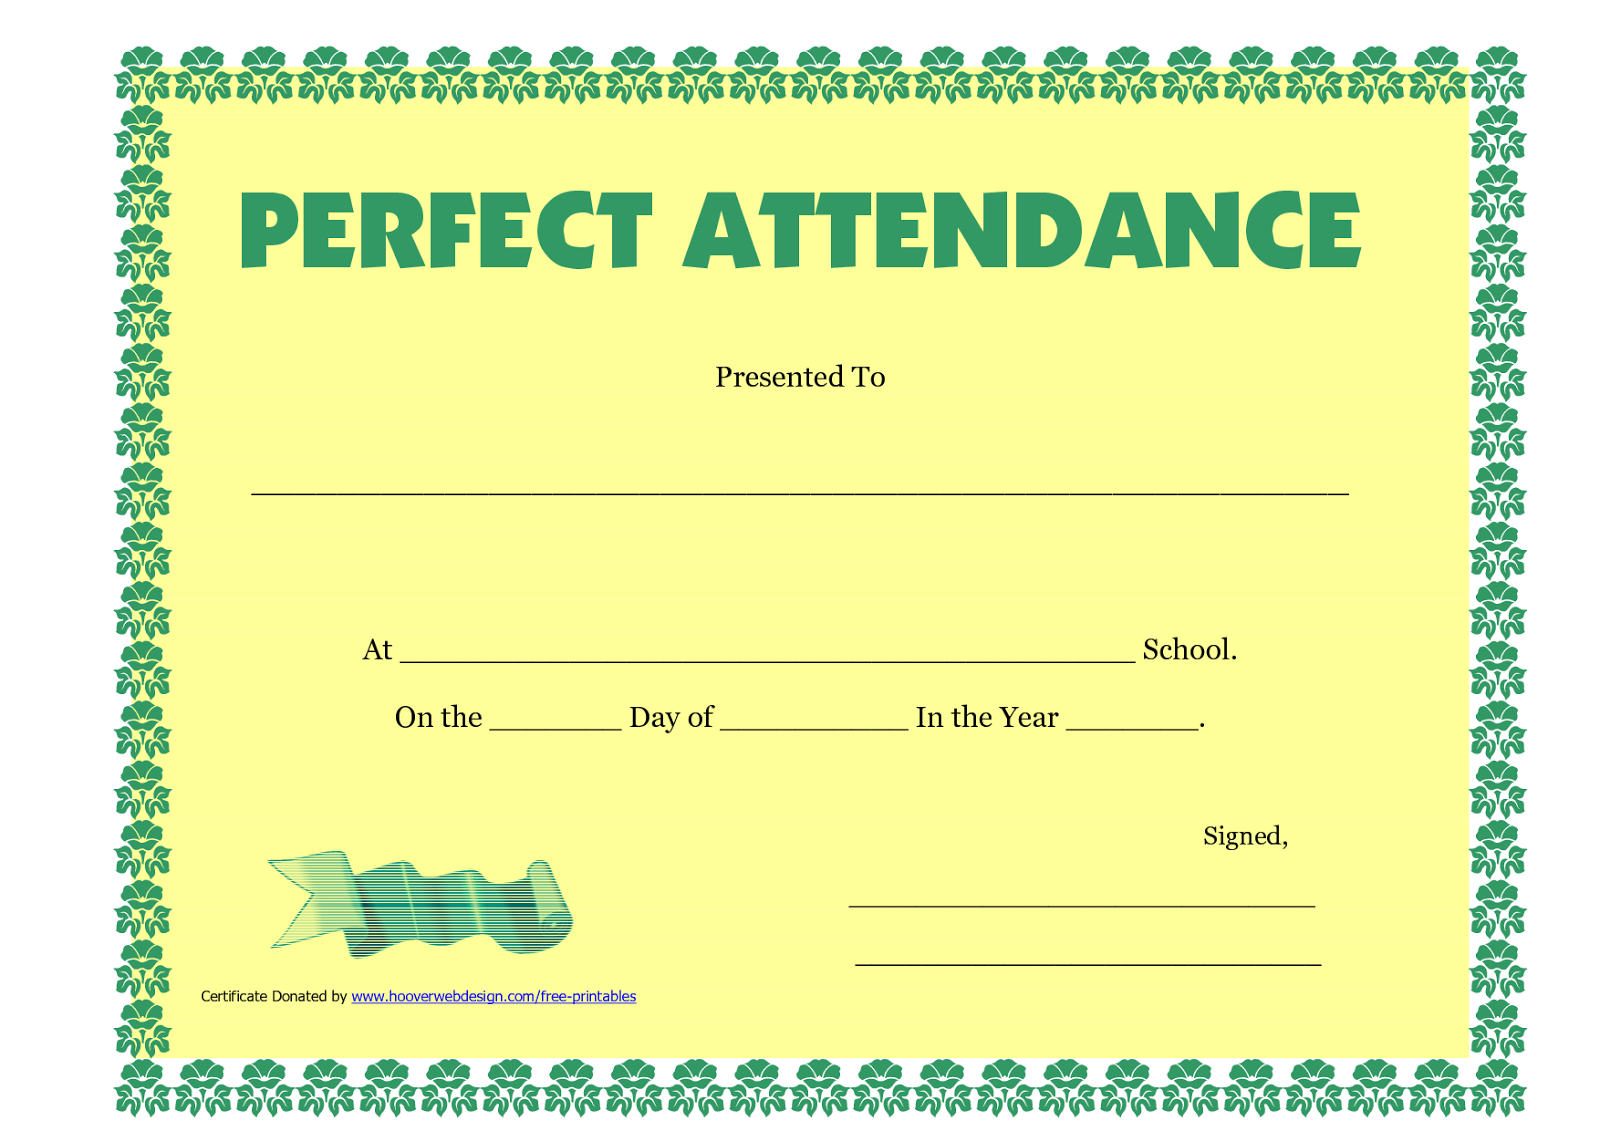 Perfect attendance certificate templates free download d templates perfect attendance certificate printable xflitez Choice Image